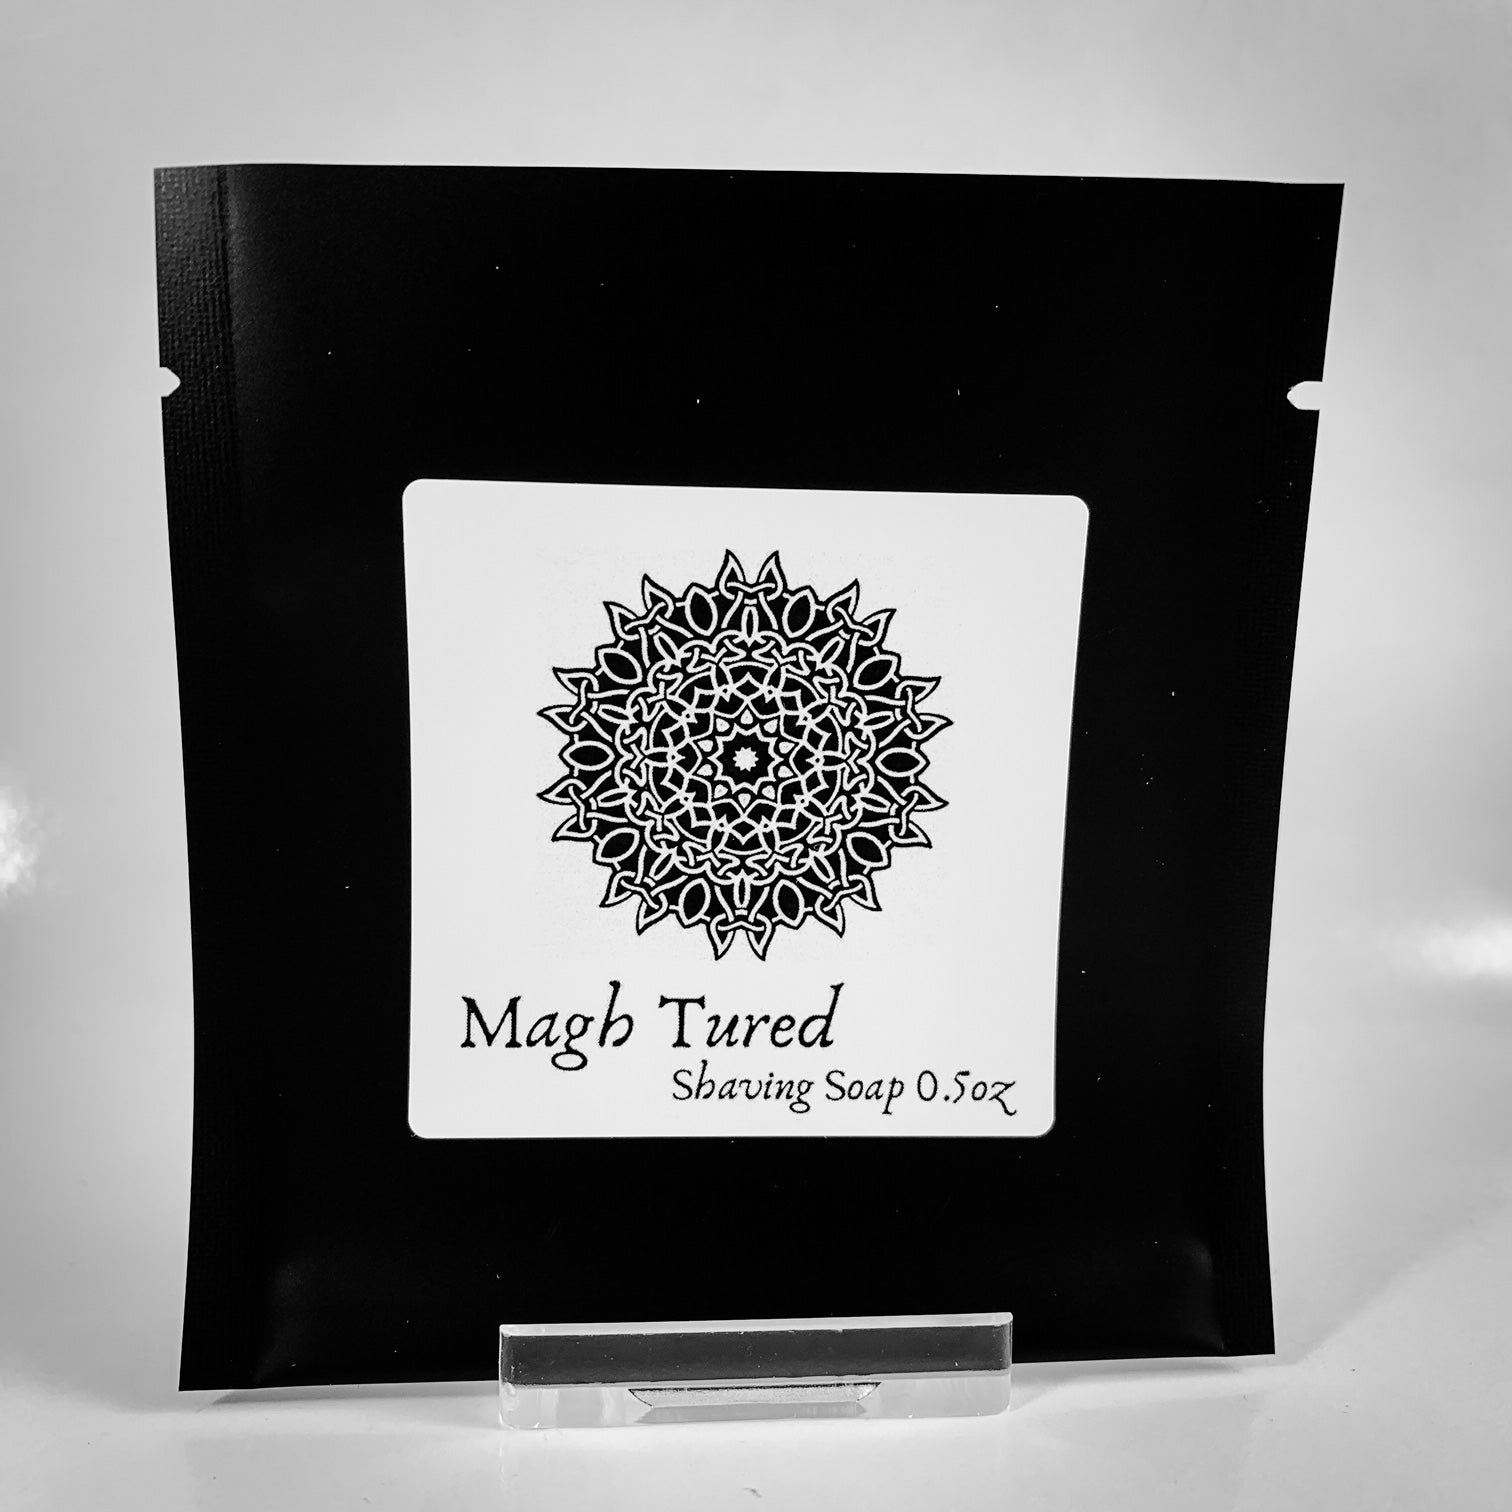 Magh Tured Shaving Soap